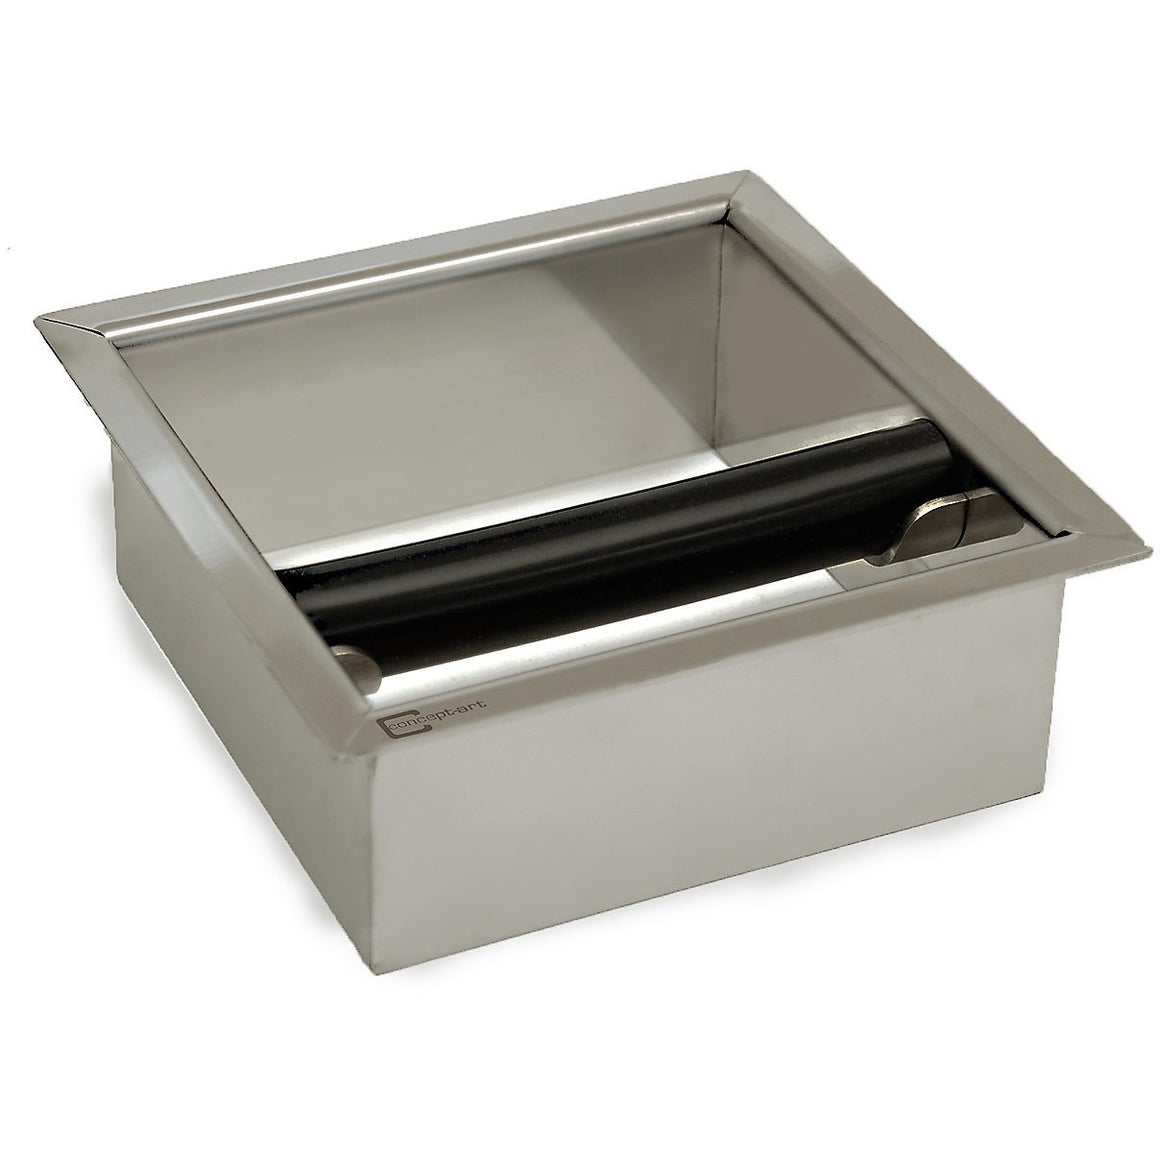 Knock Box Counter Top S by Joe Frex